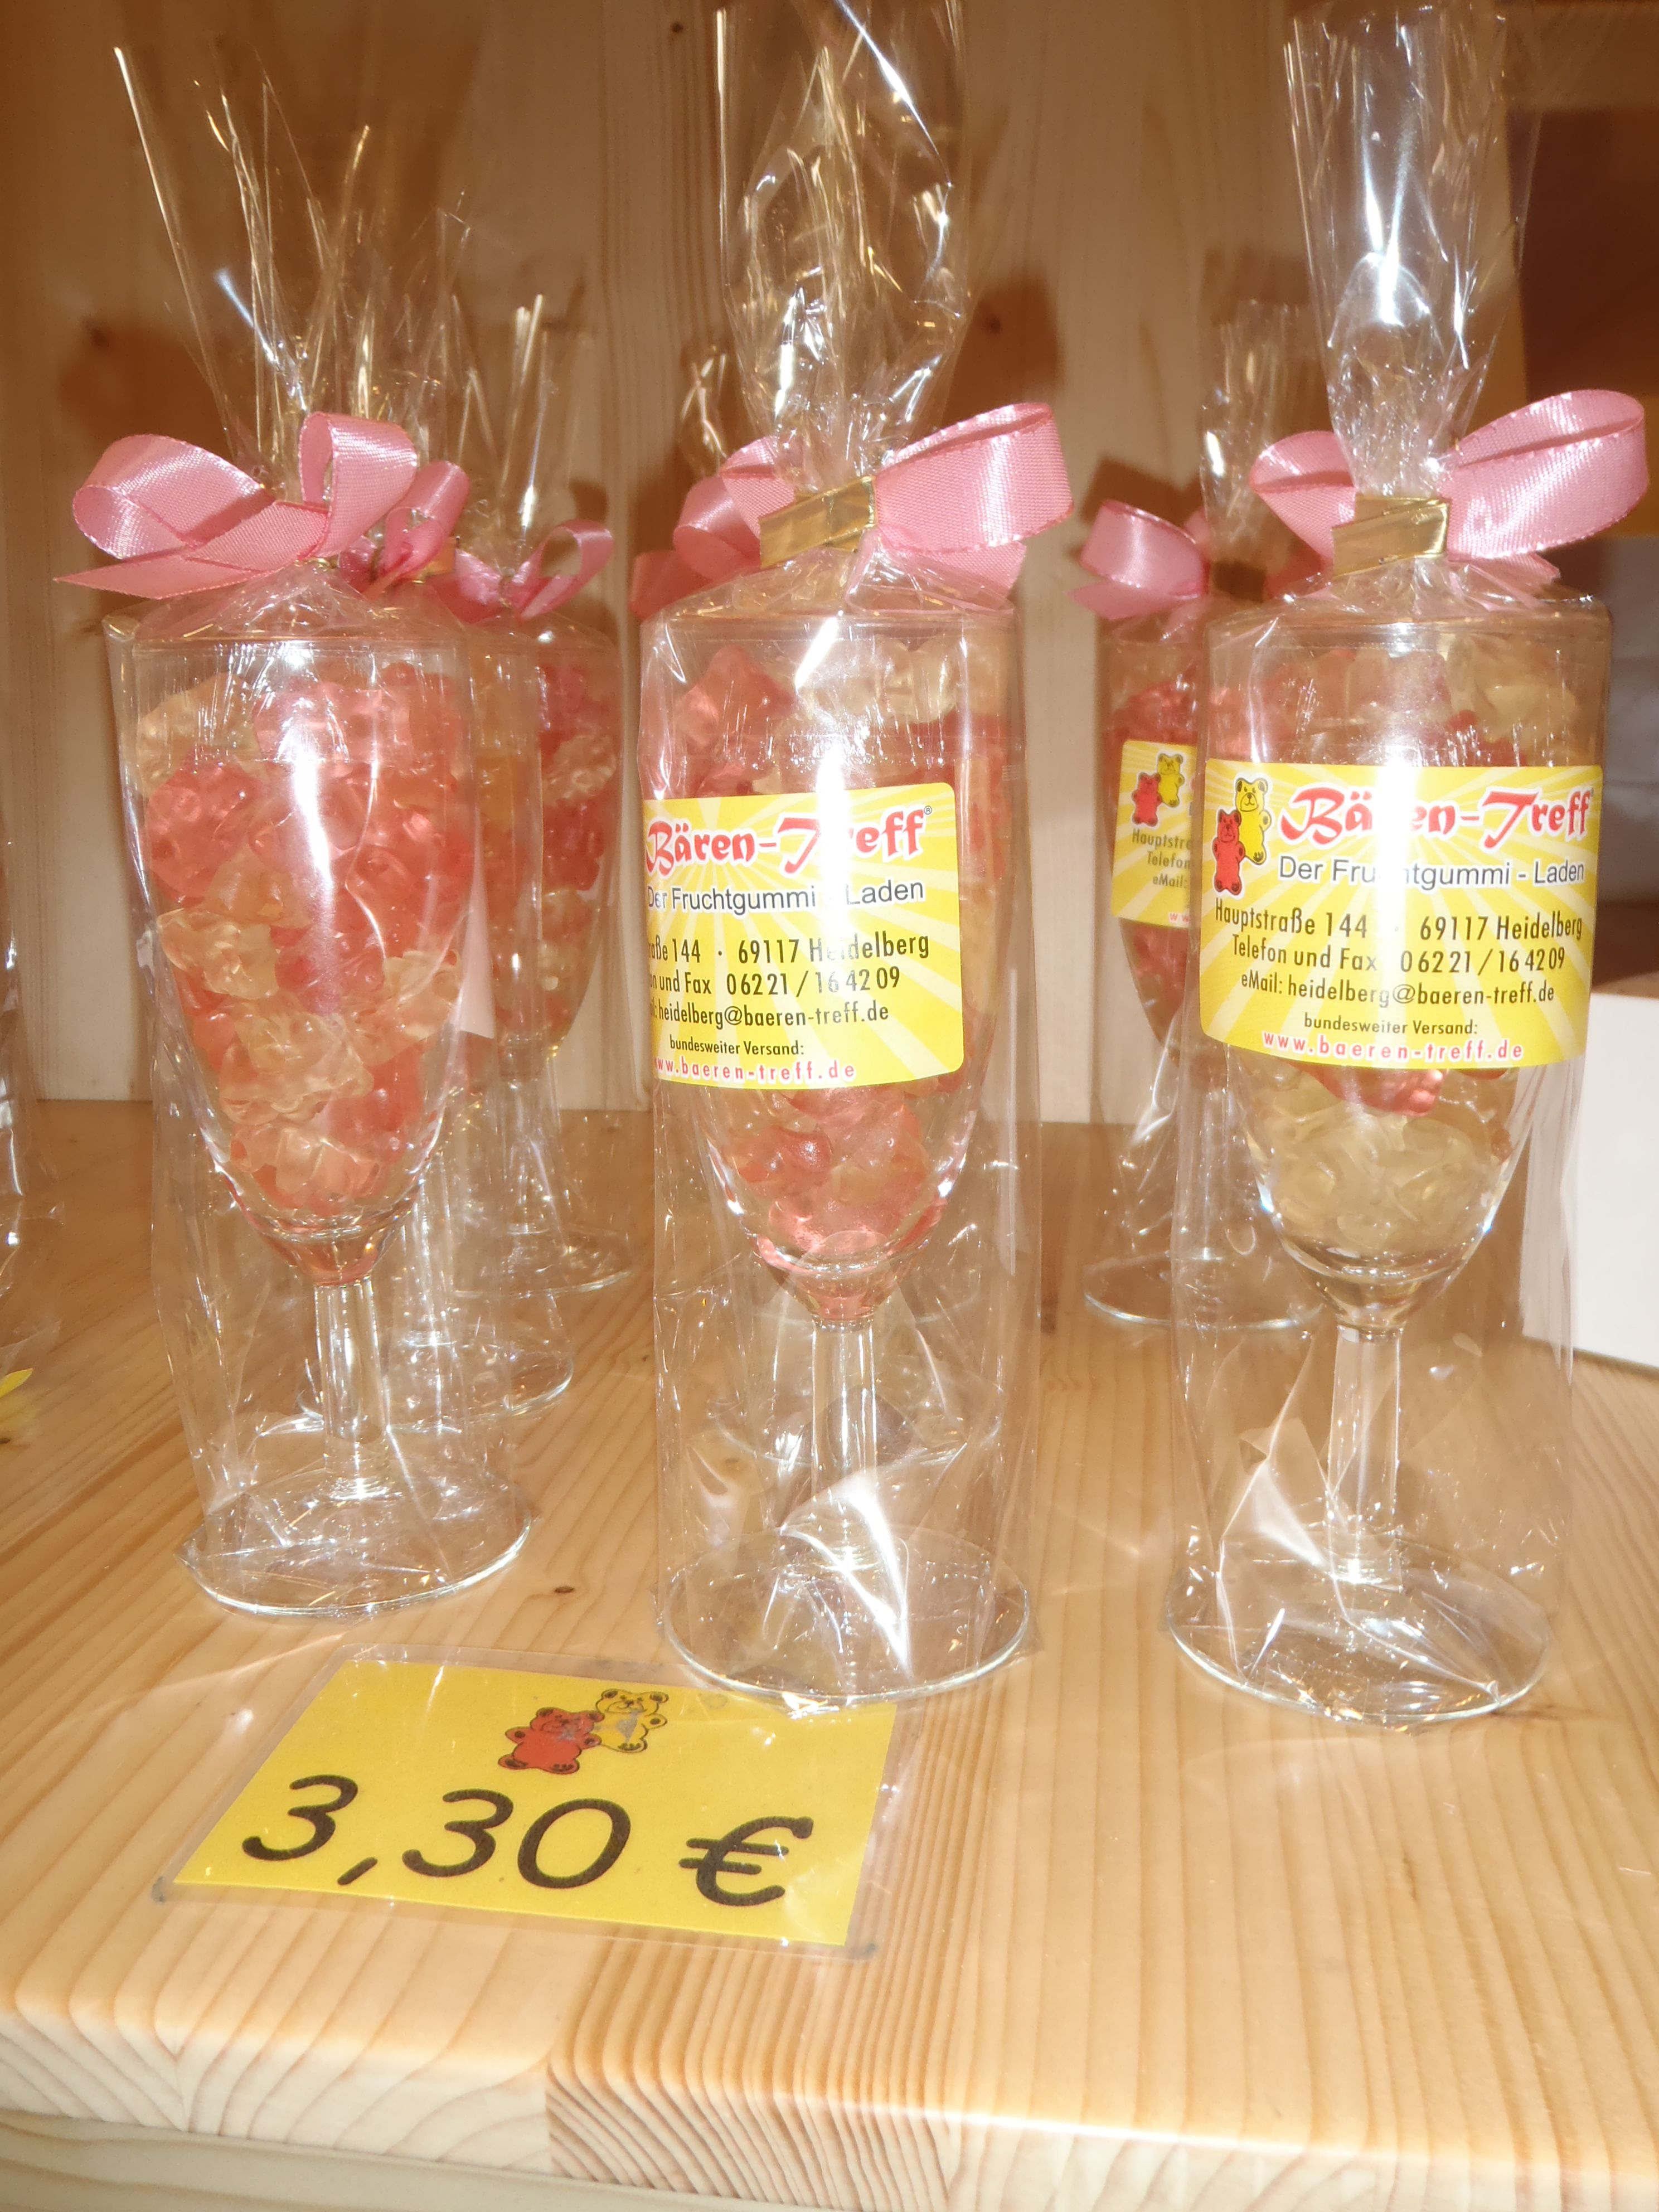 Decoration Coupe De Champagne Cute Idea For A Wedding Favor Gummy Bears In Champagne